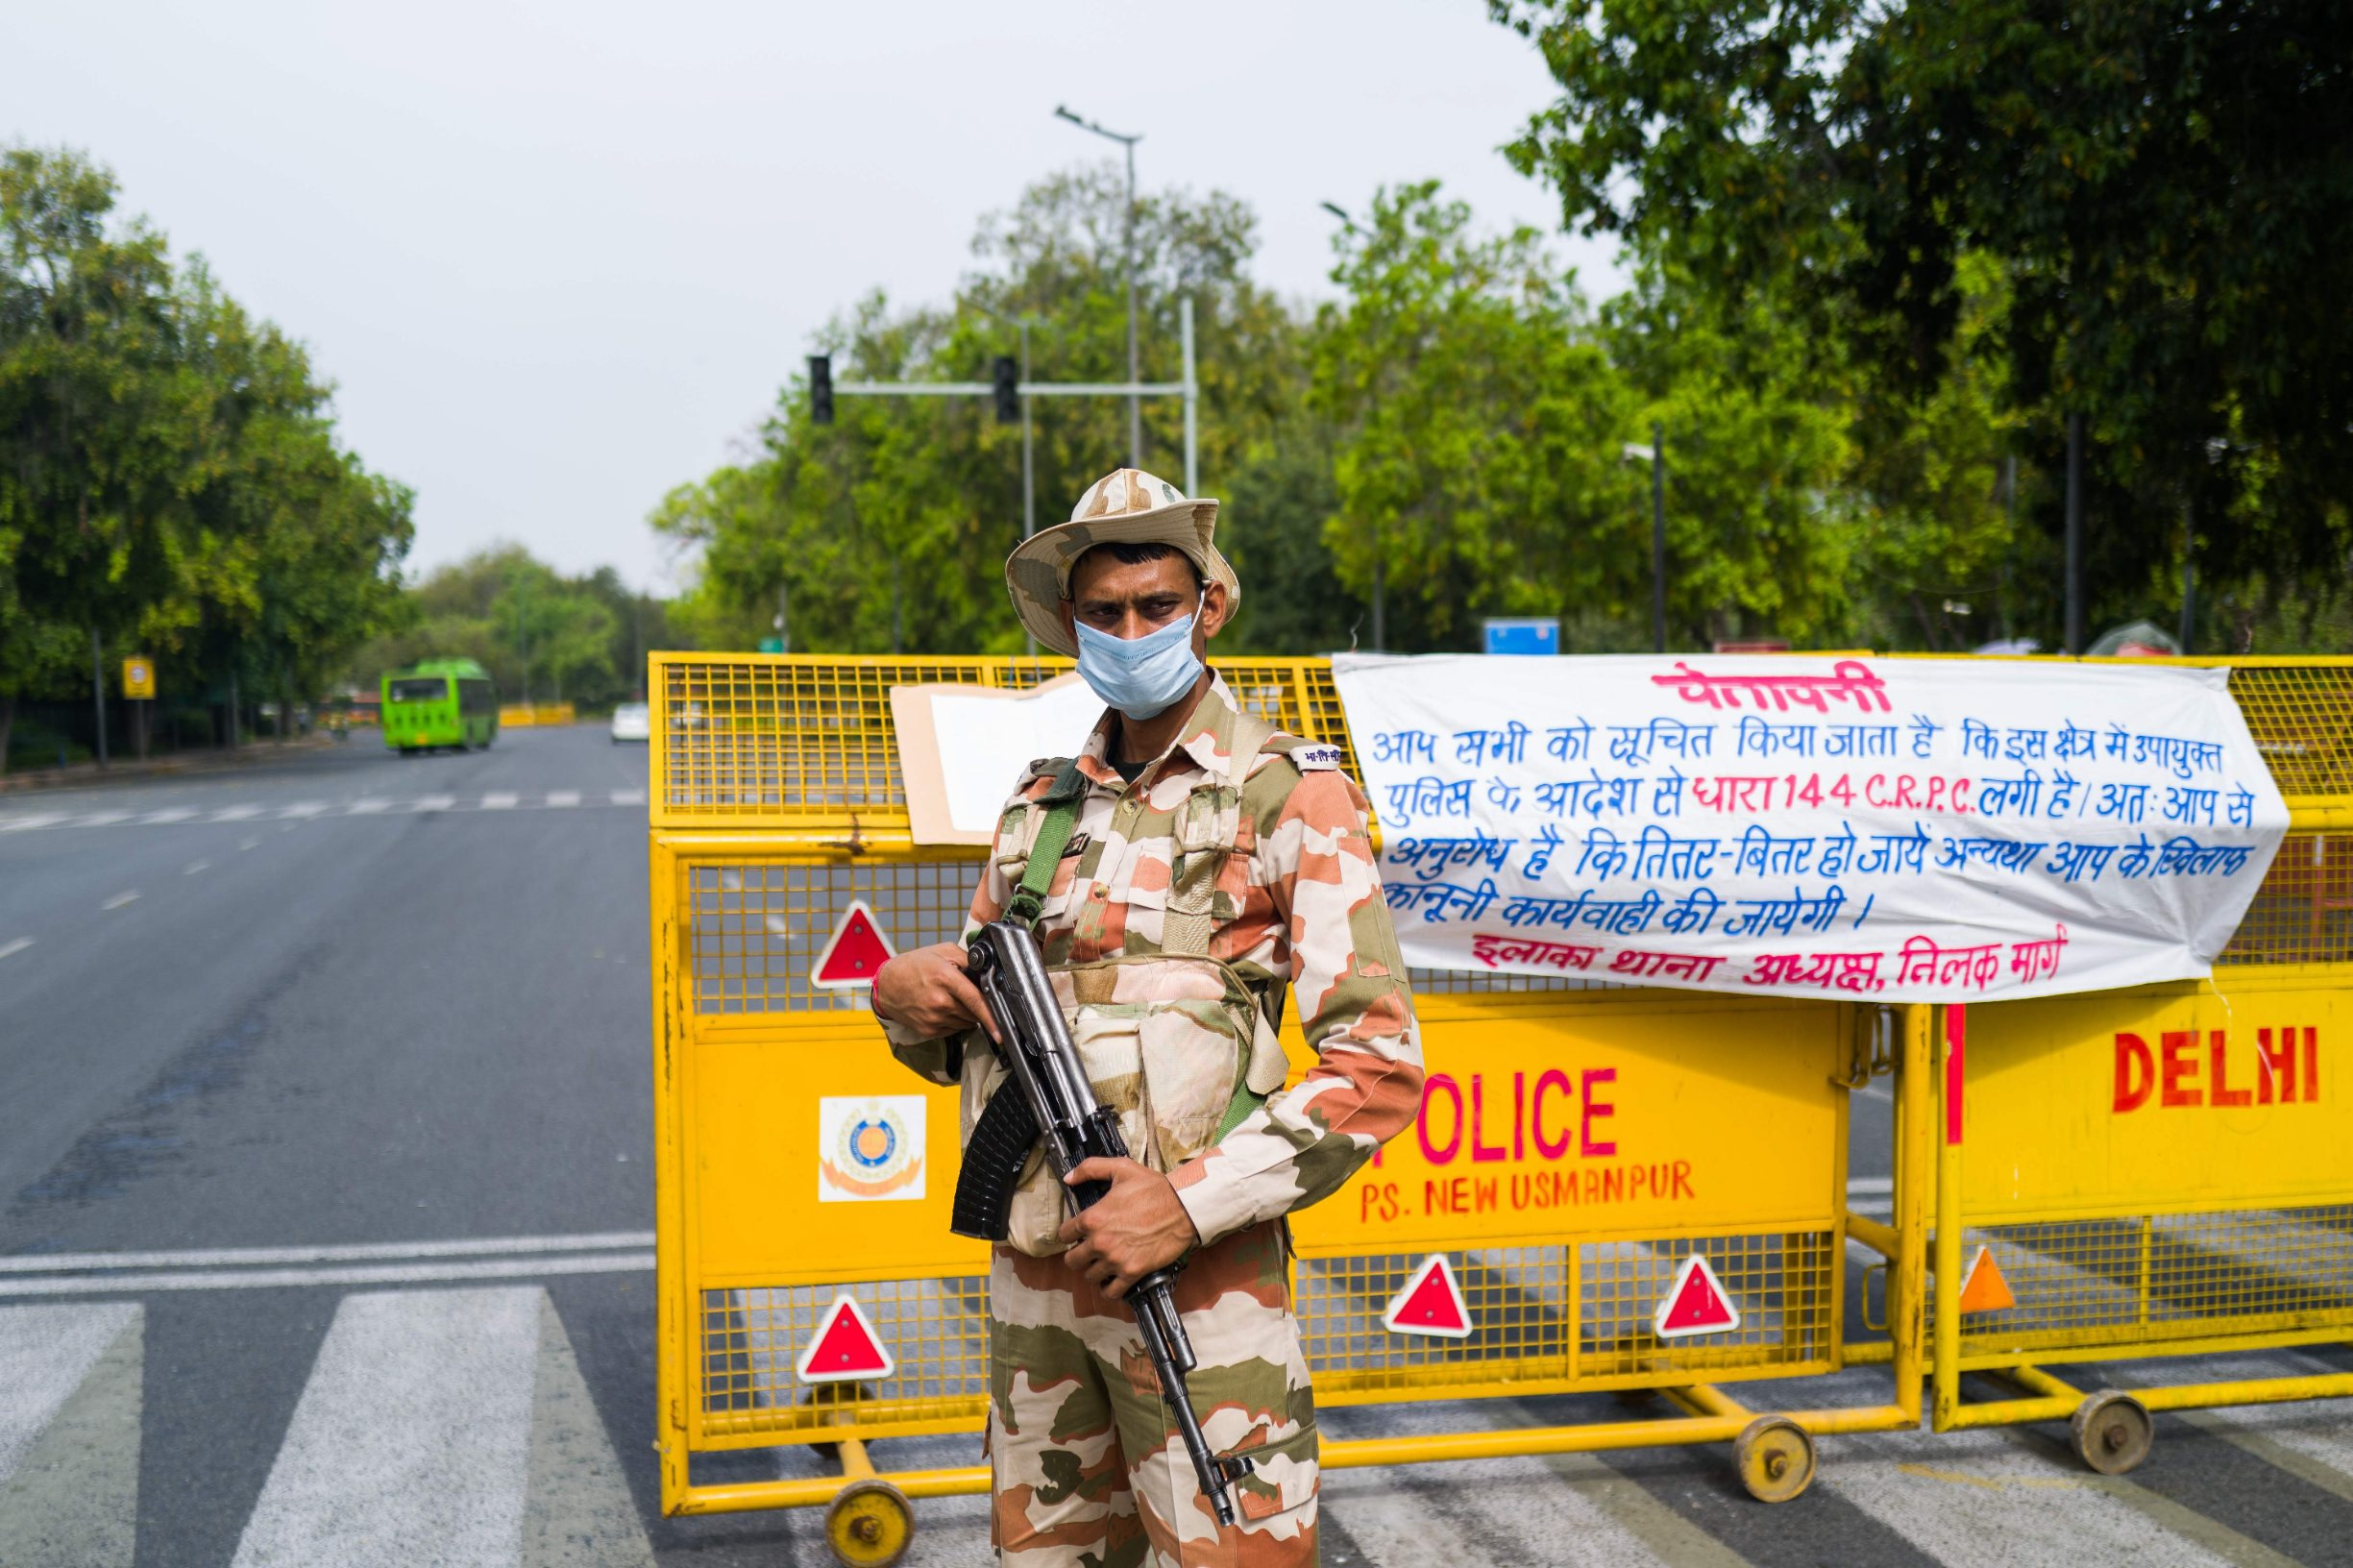 A security personnel stands guard at a checkpoint during a government-imposed nationwide lockdown as a preventive measure against the COVID-19 coronavirus in New Delhi on March 26, 2020. (Photo by Jewel SAMAD / AFP)